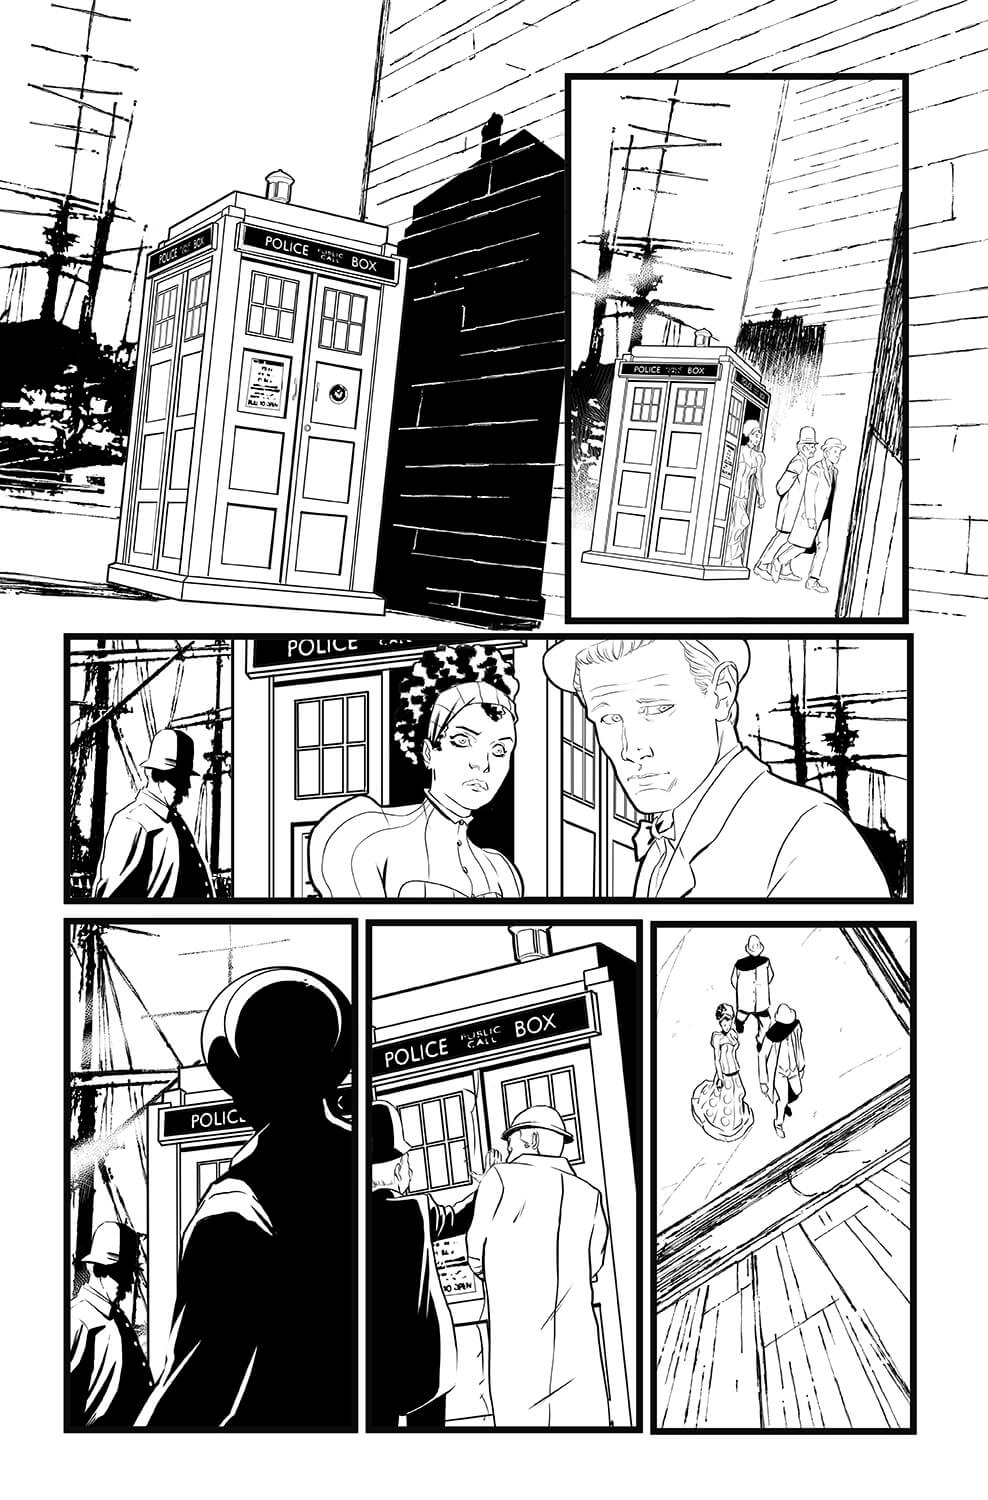 pasquale-qualano-portfolio-interiors-Doctor-Who-11th-Doctor-The-Steampunk-Conundrum-Page-11---